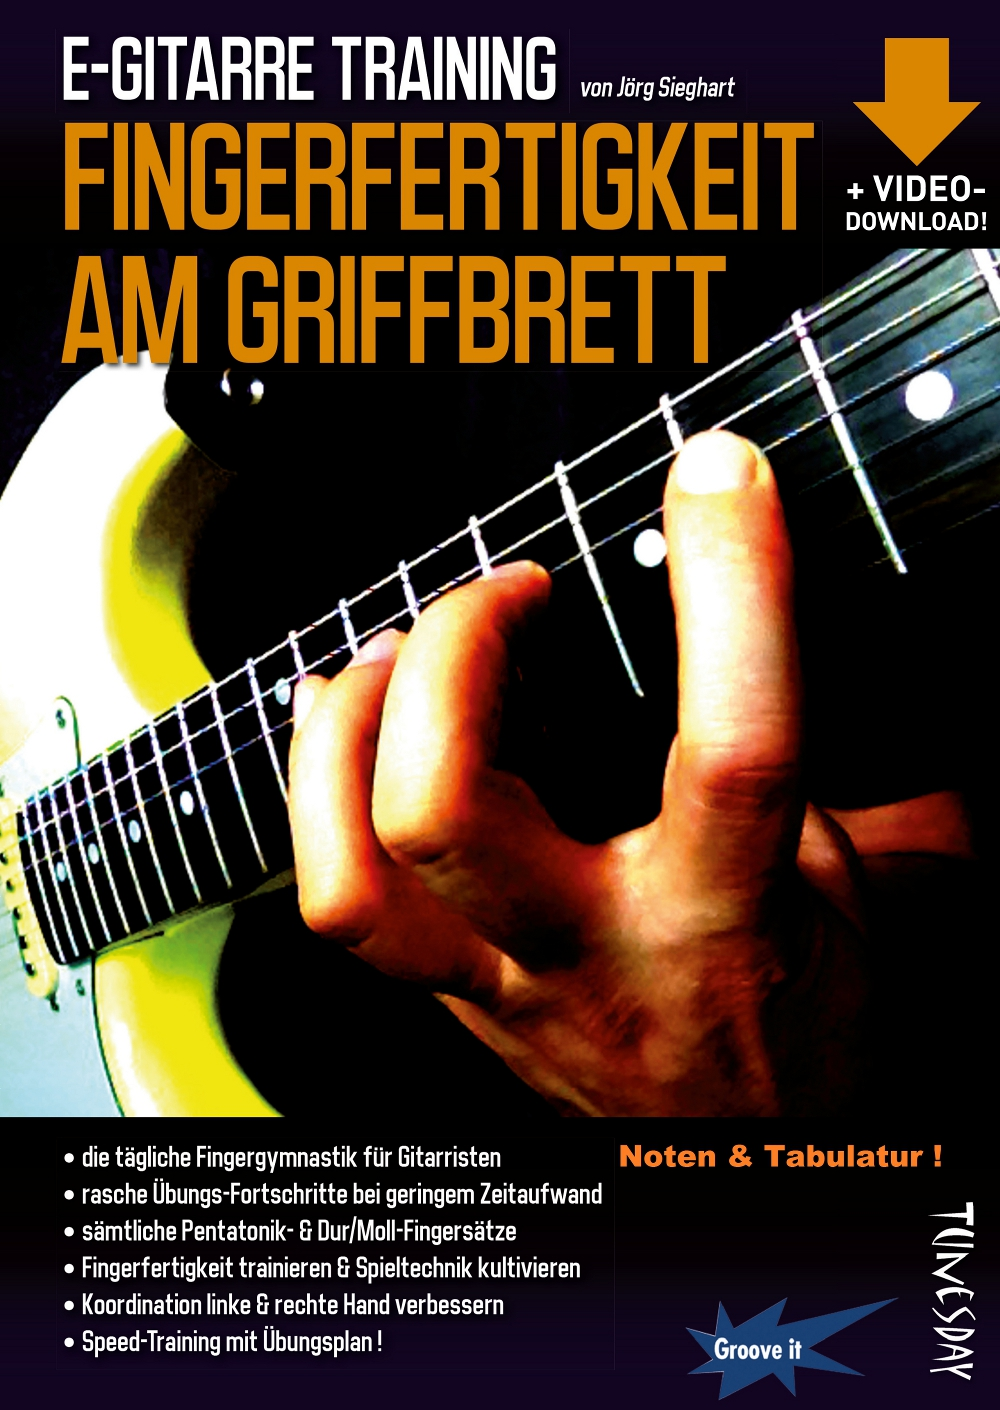 E-Gitarre Training - Fingerfertigkeit am Griffbrett (mit Video ...